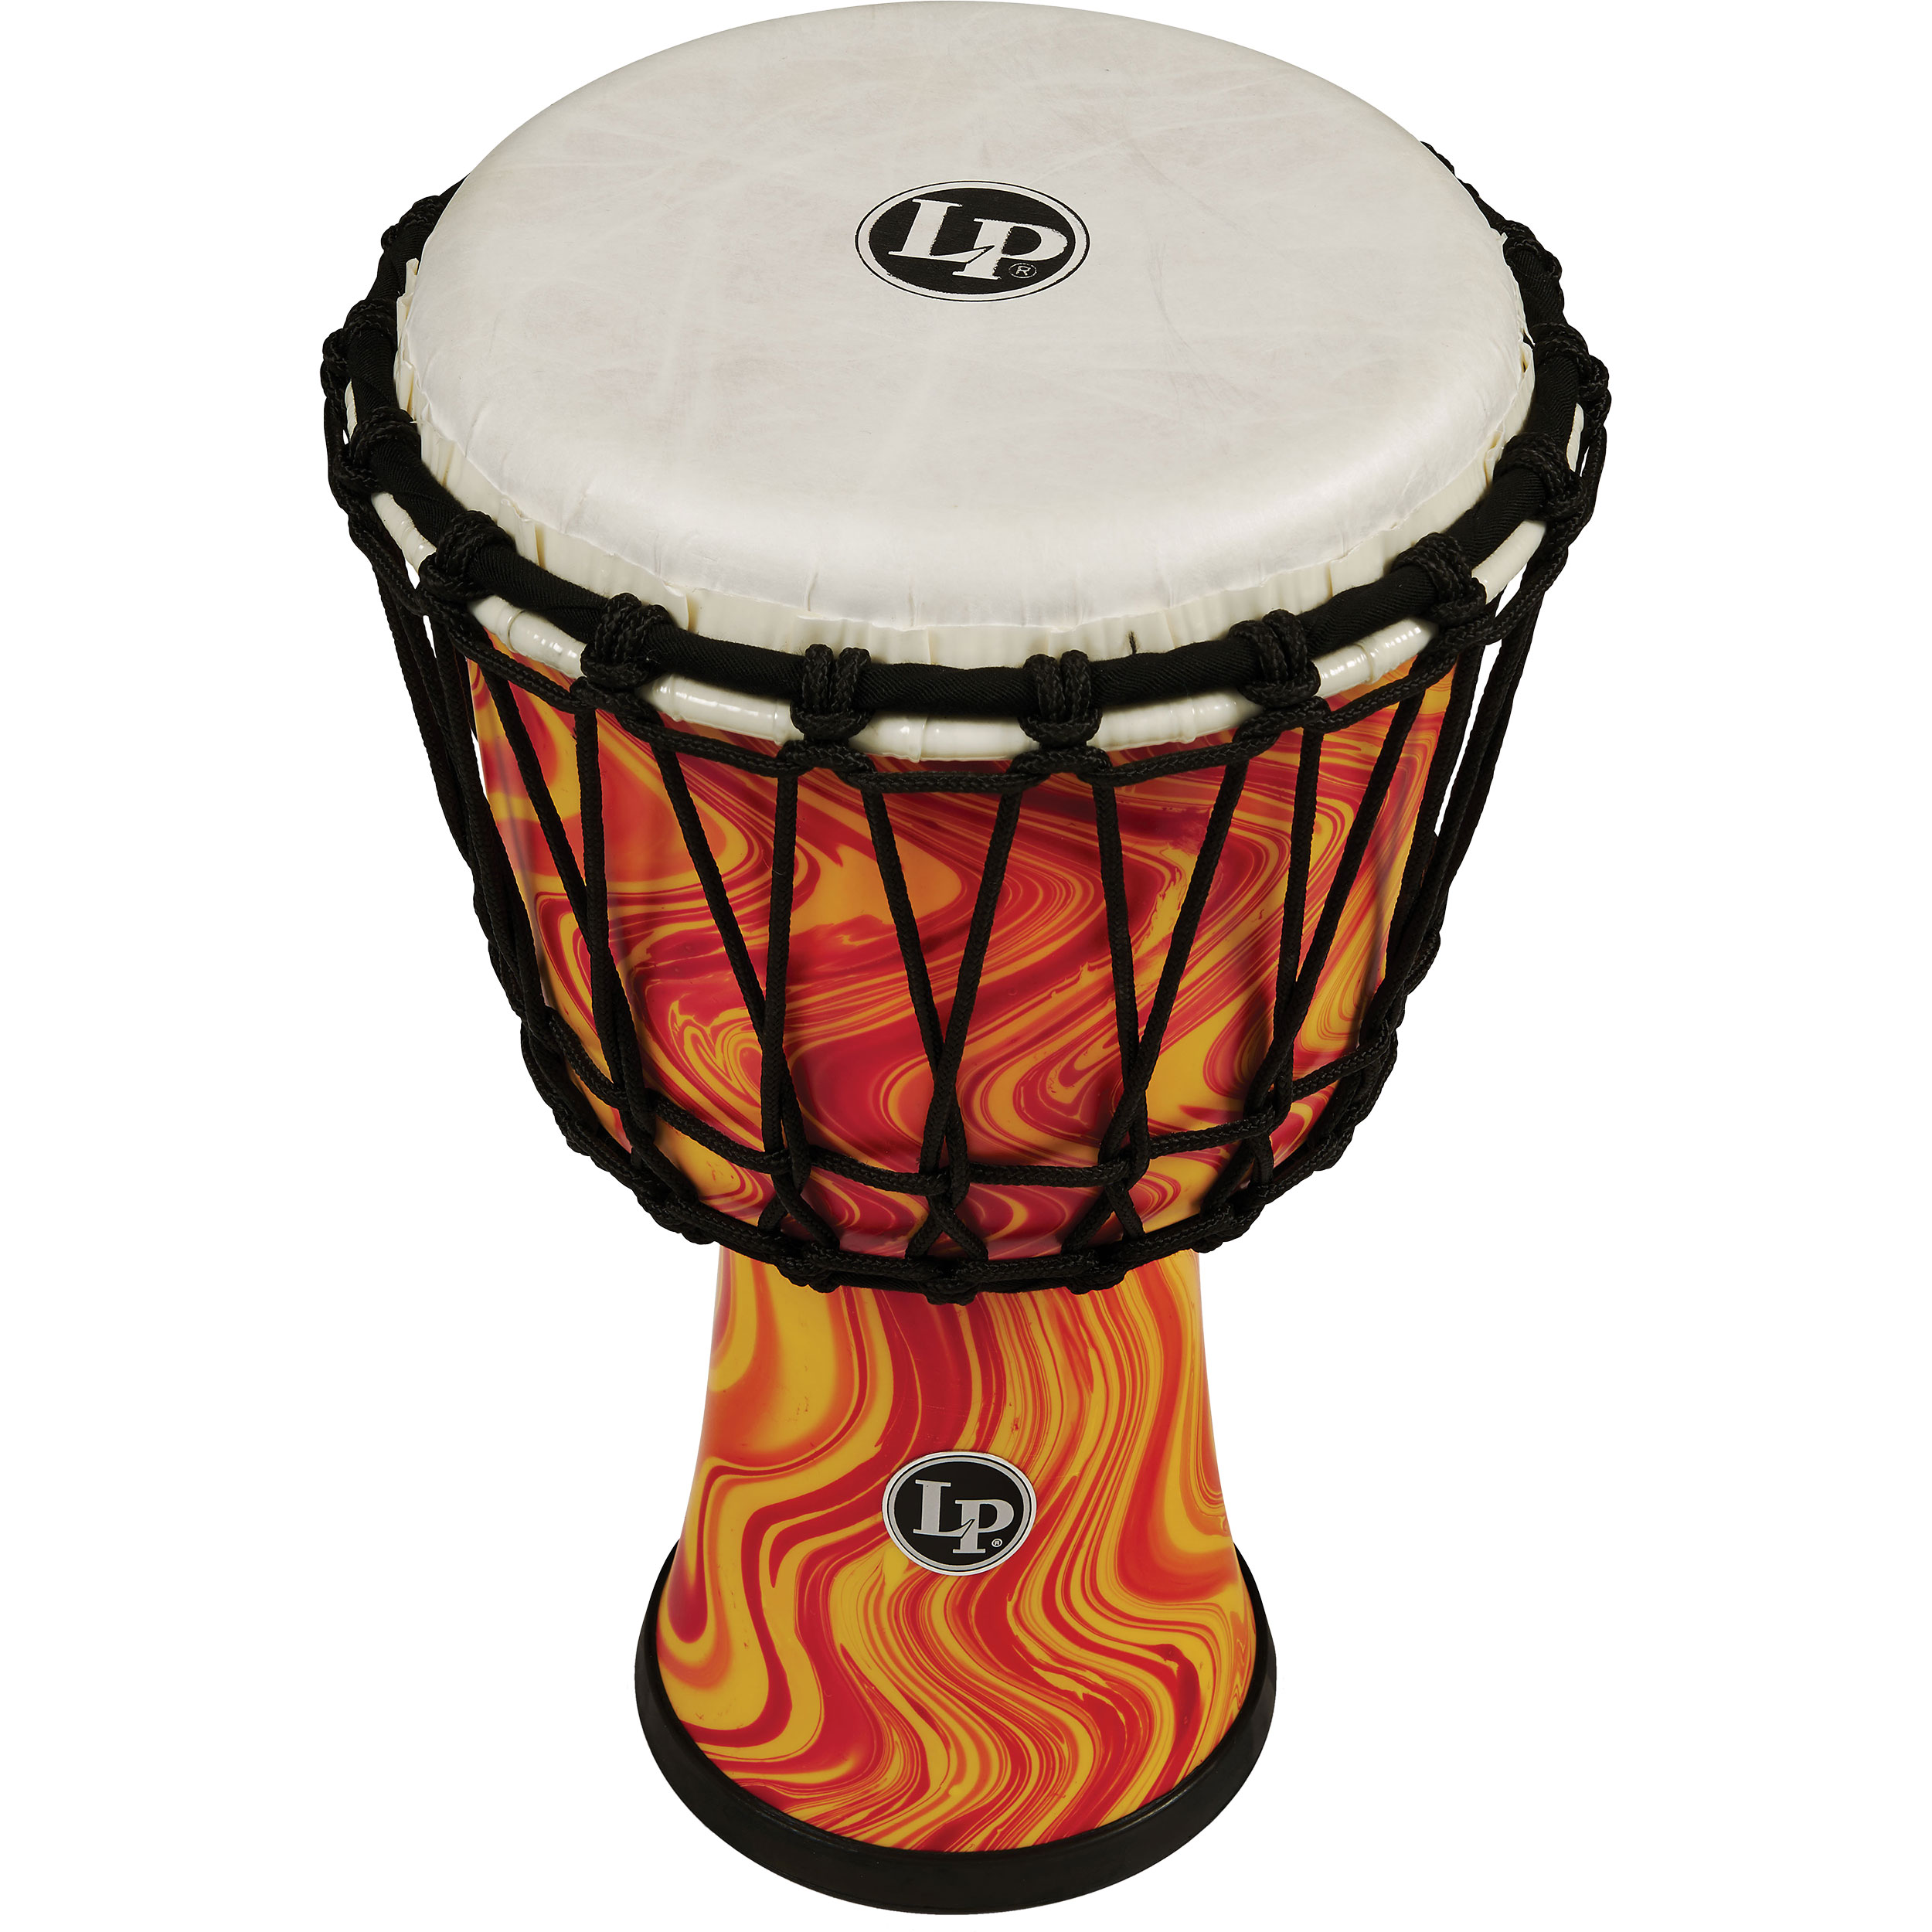 "LP 7"" Rope Tuned Circle Djembe in Orange Marble"